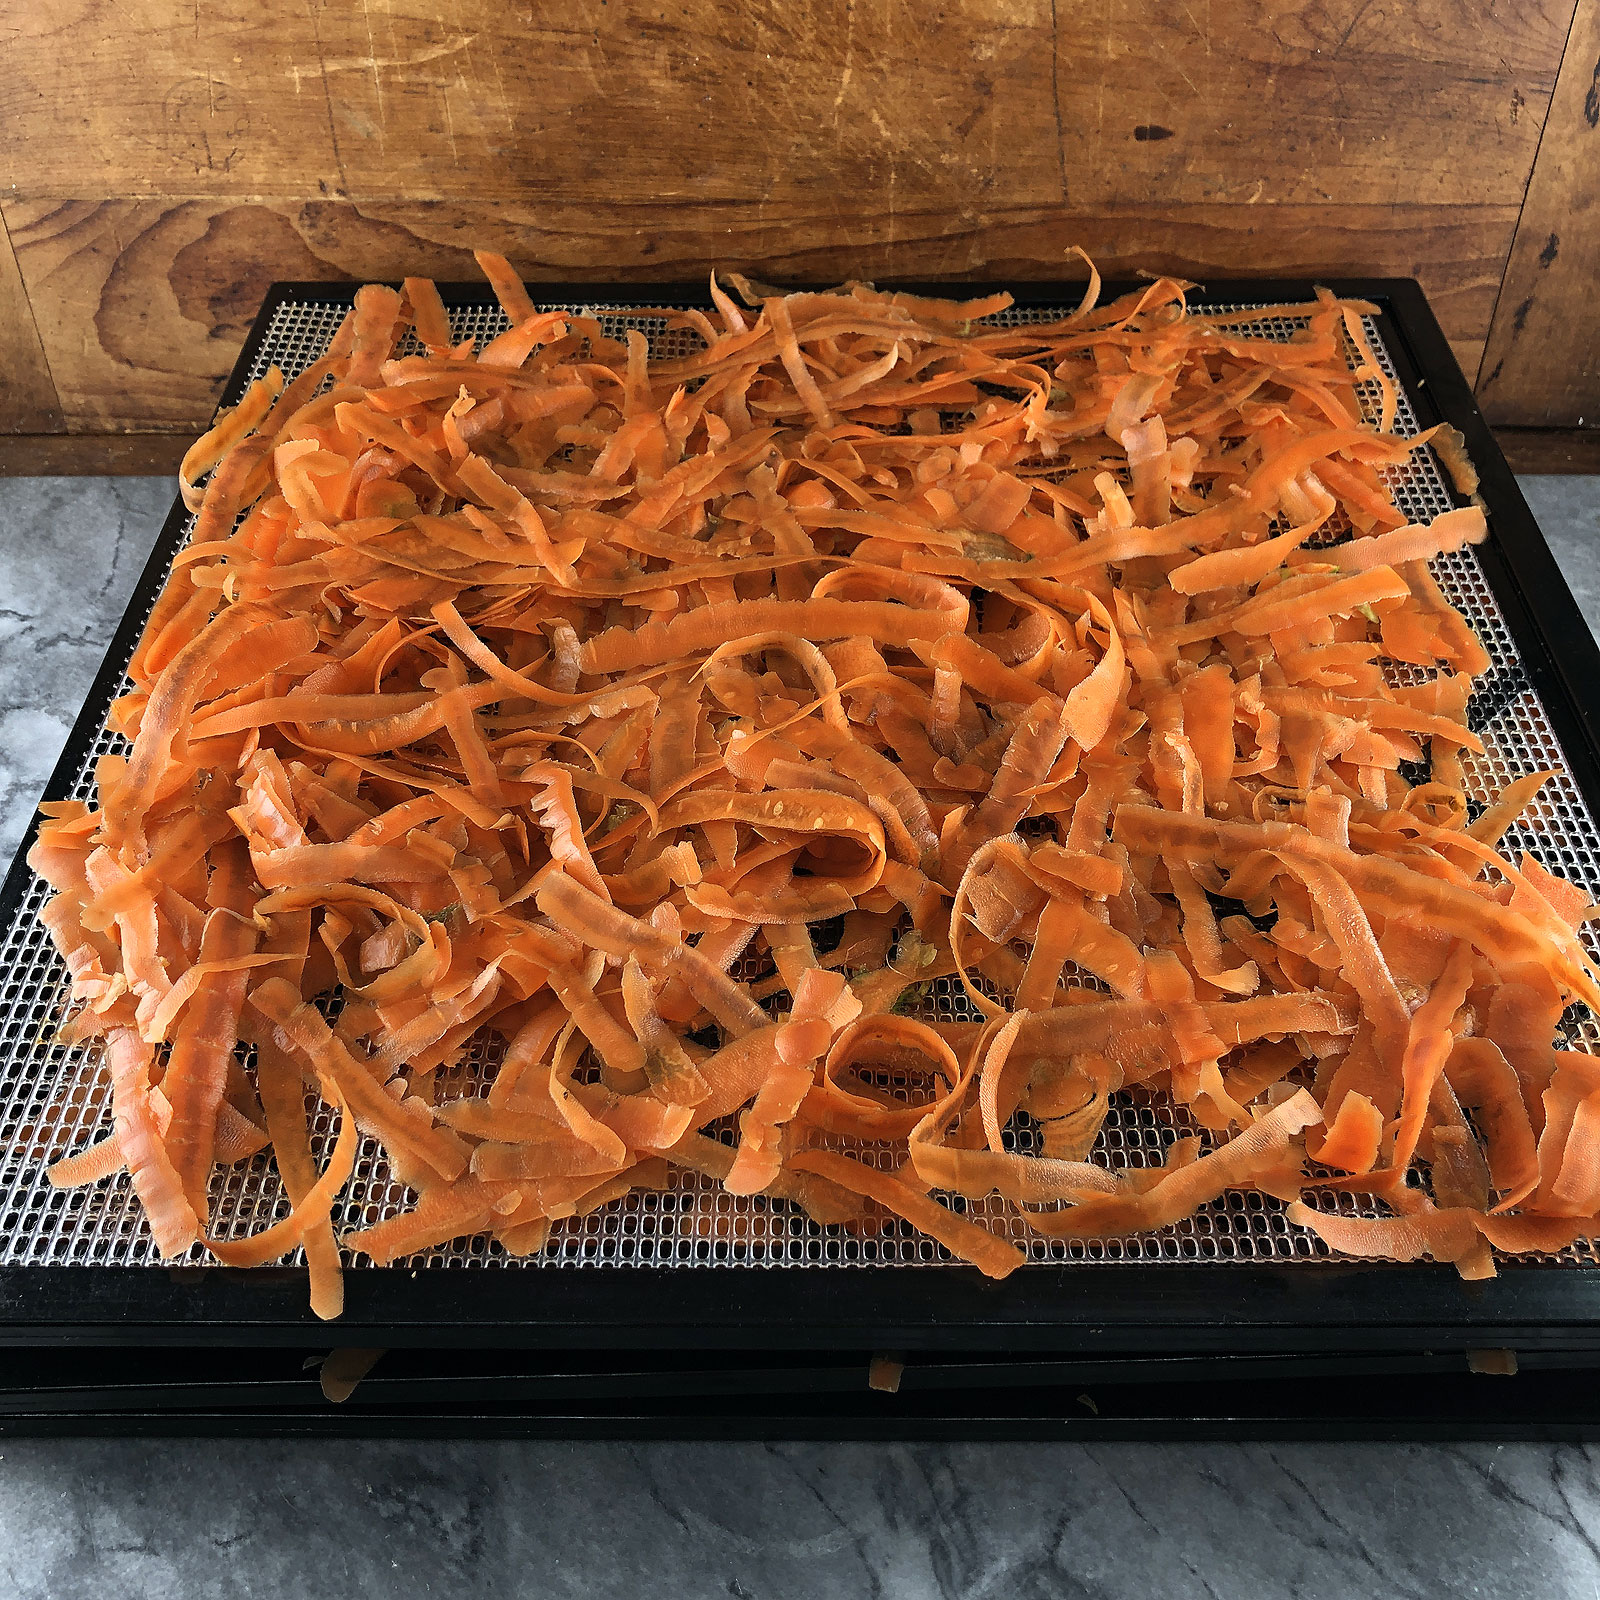 Carrot peel on drying tray